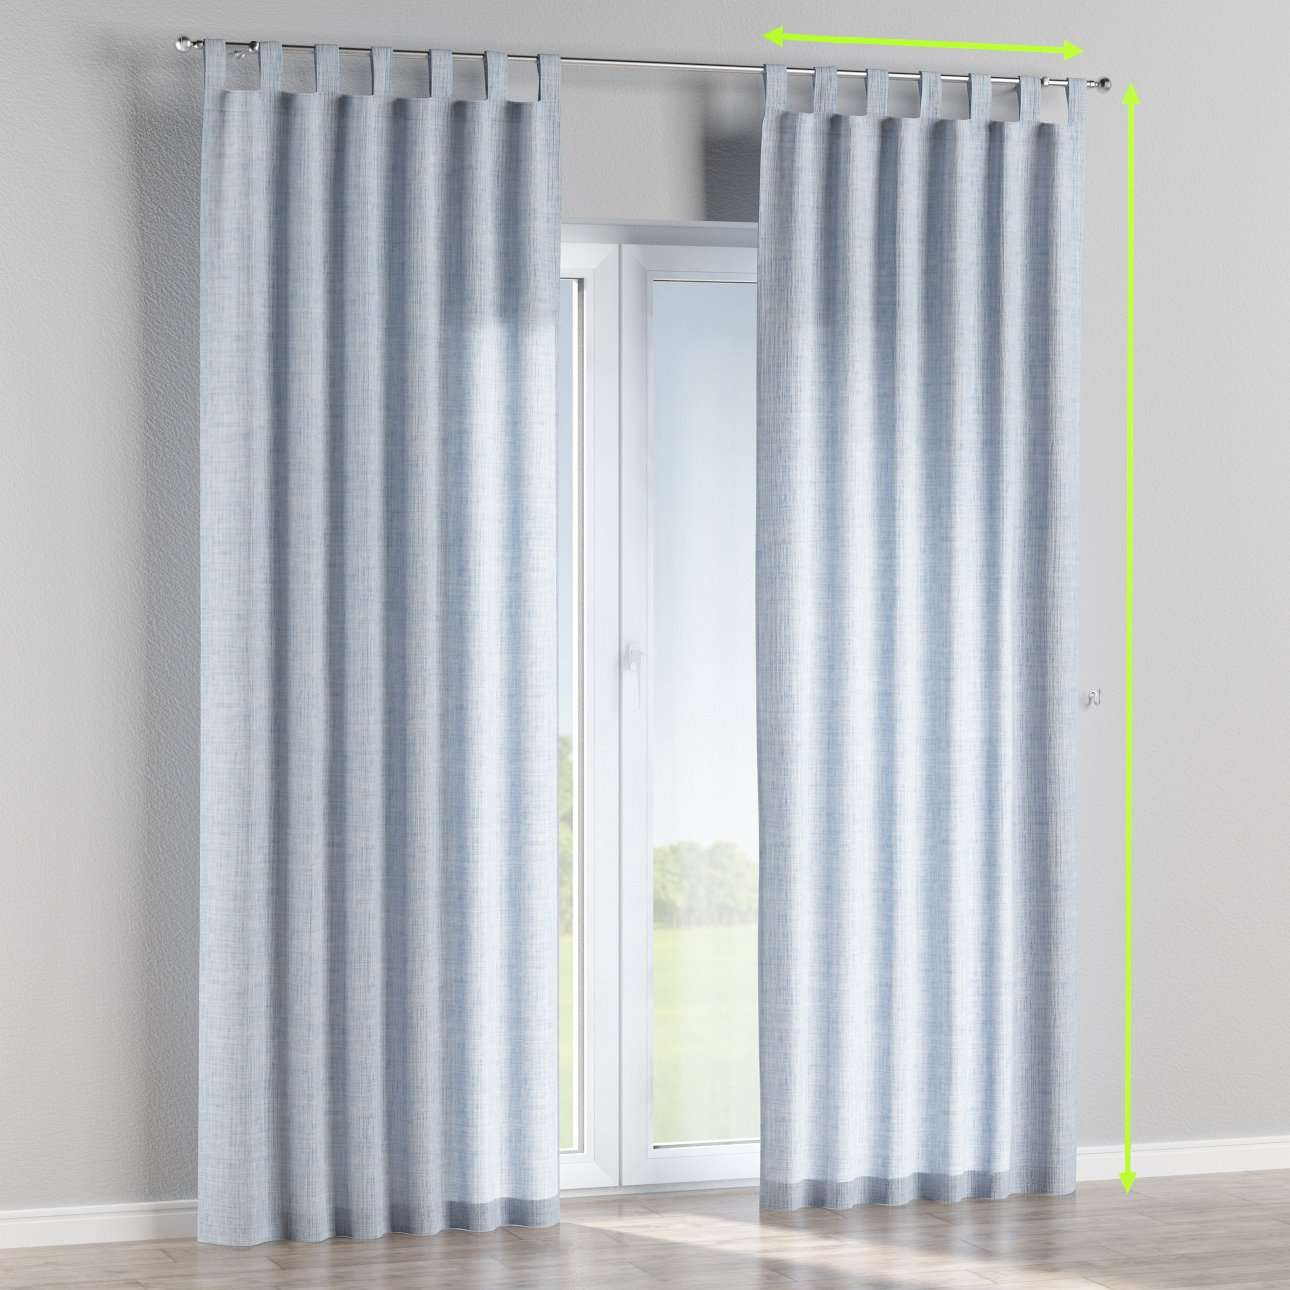 Tab top lined curtains in collection Aquarelle, fabric: 140-74